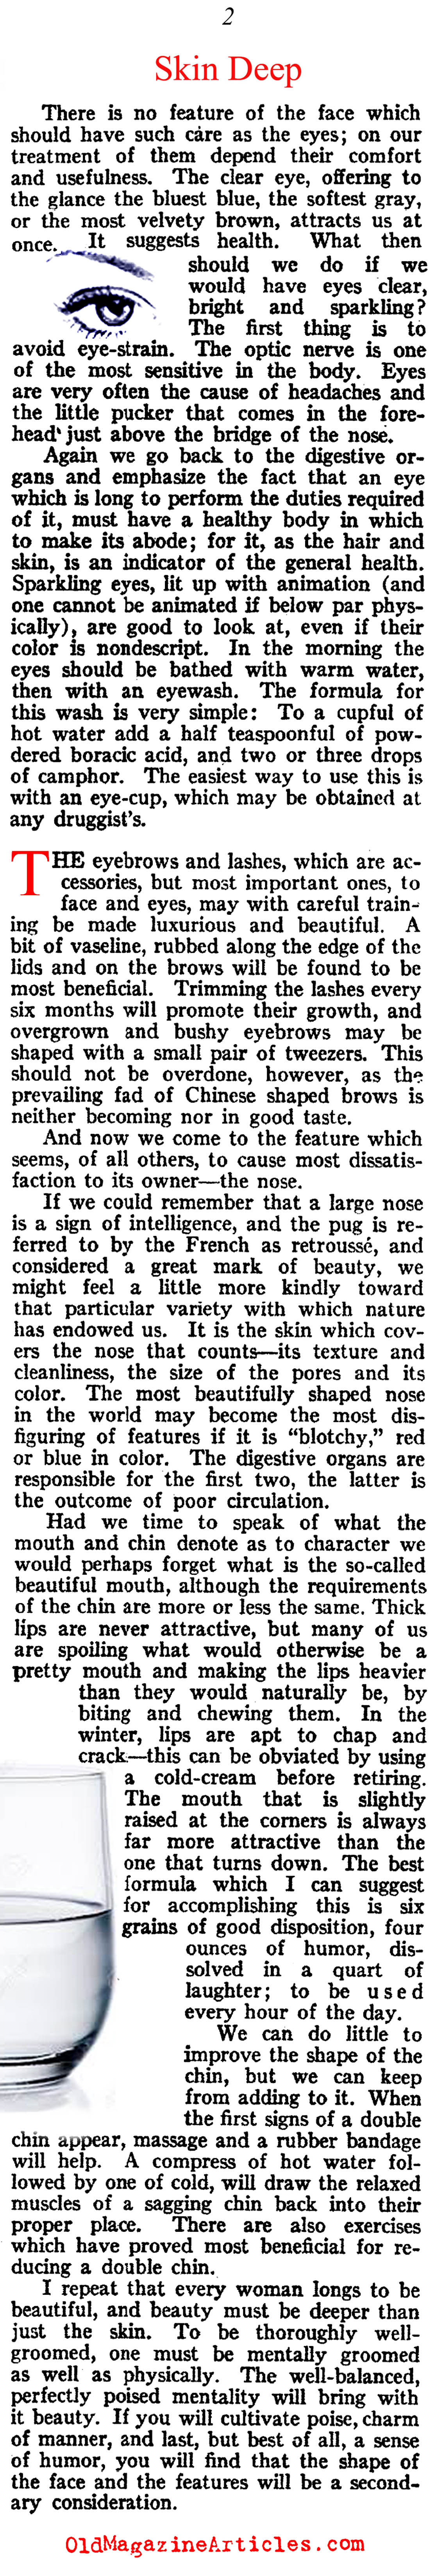 Timeless Advice Regarding Skin Care (McCall's Magazine, 1920)